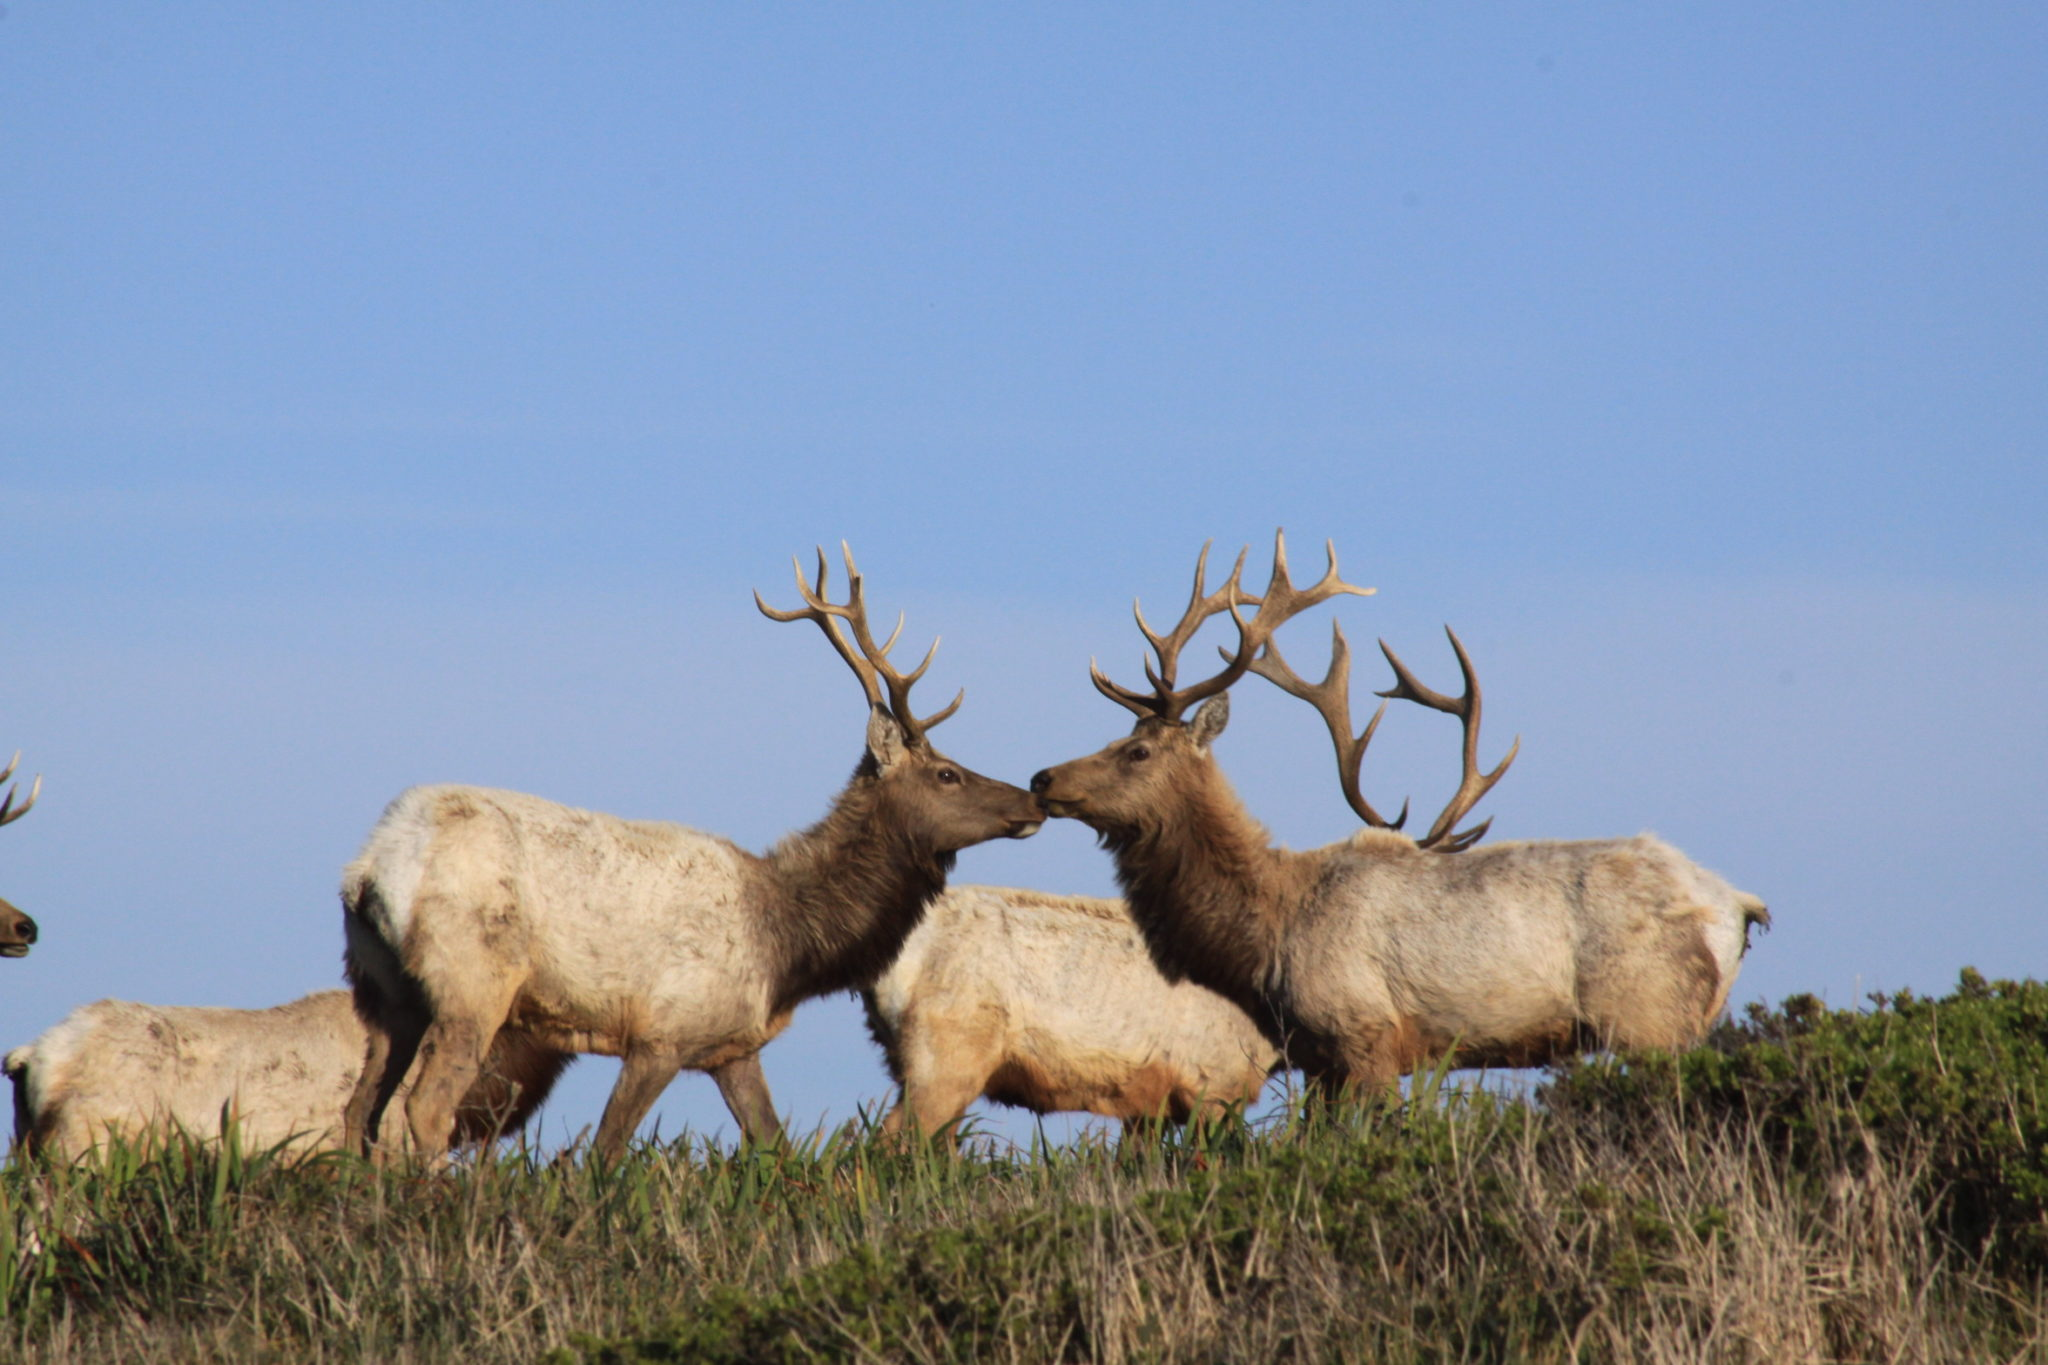 Tule Elk at Pt. Tomales in Pt. Reyes National Seashore